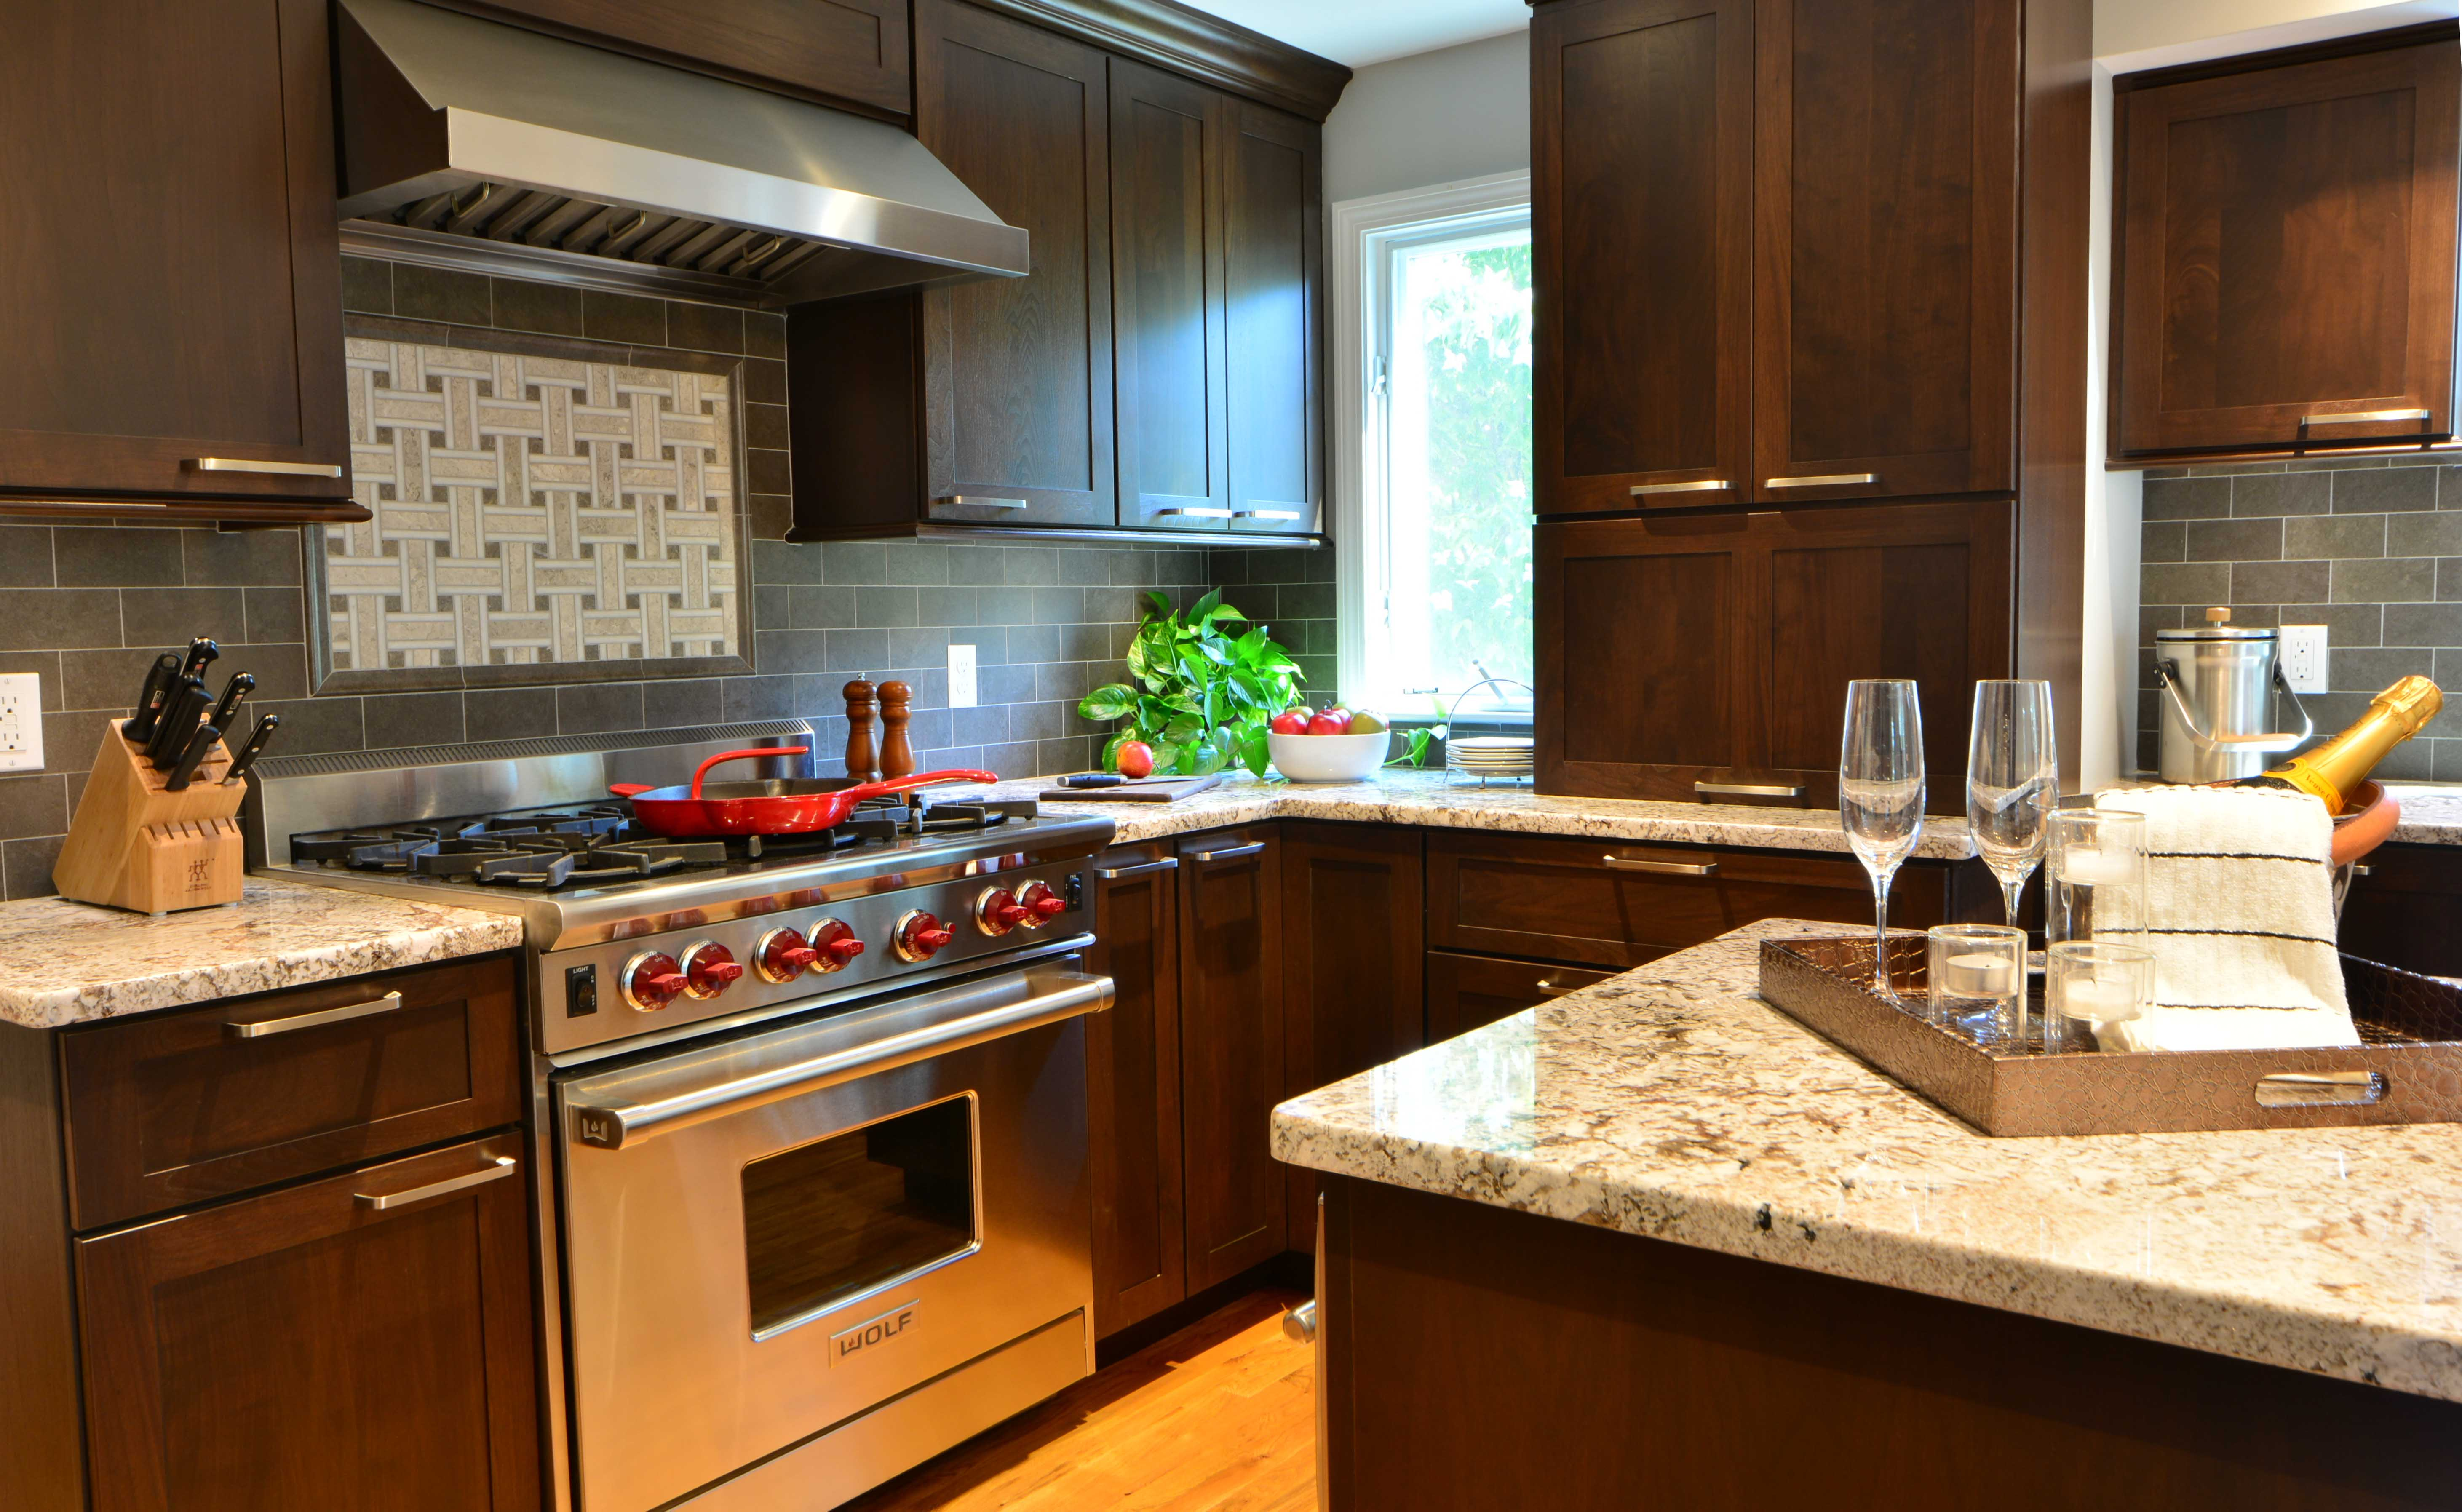 Cost-of-remodeling-a-kitchen-2